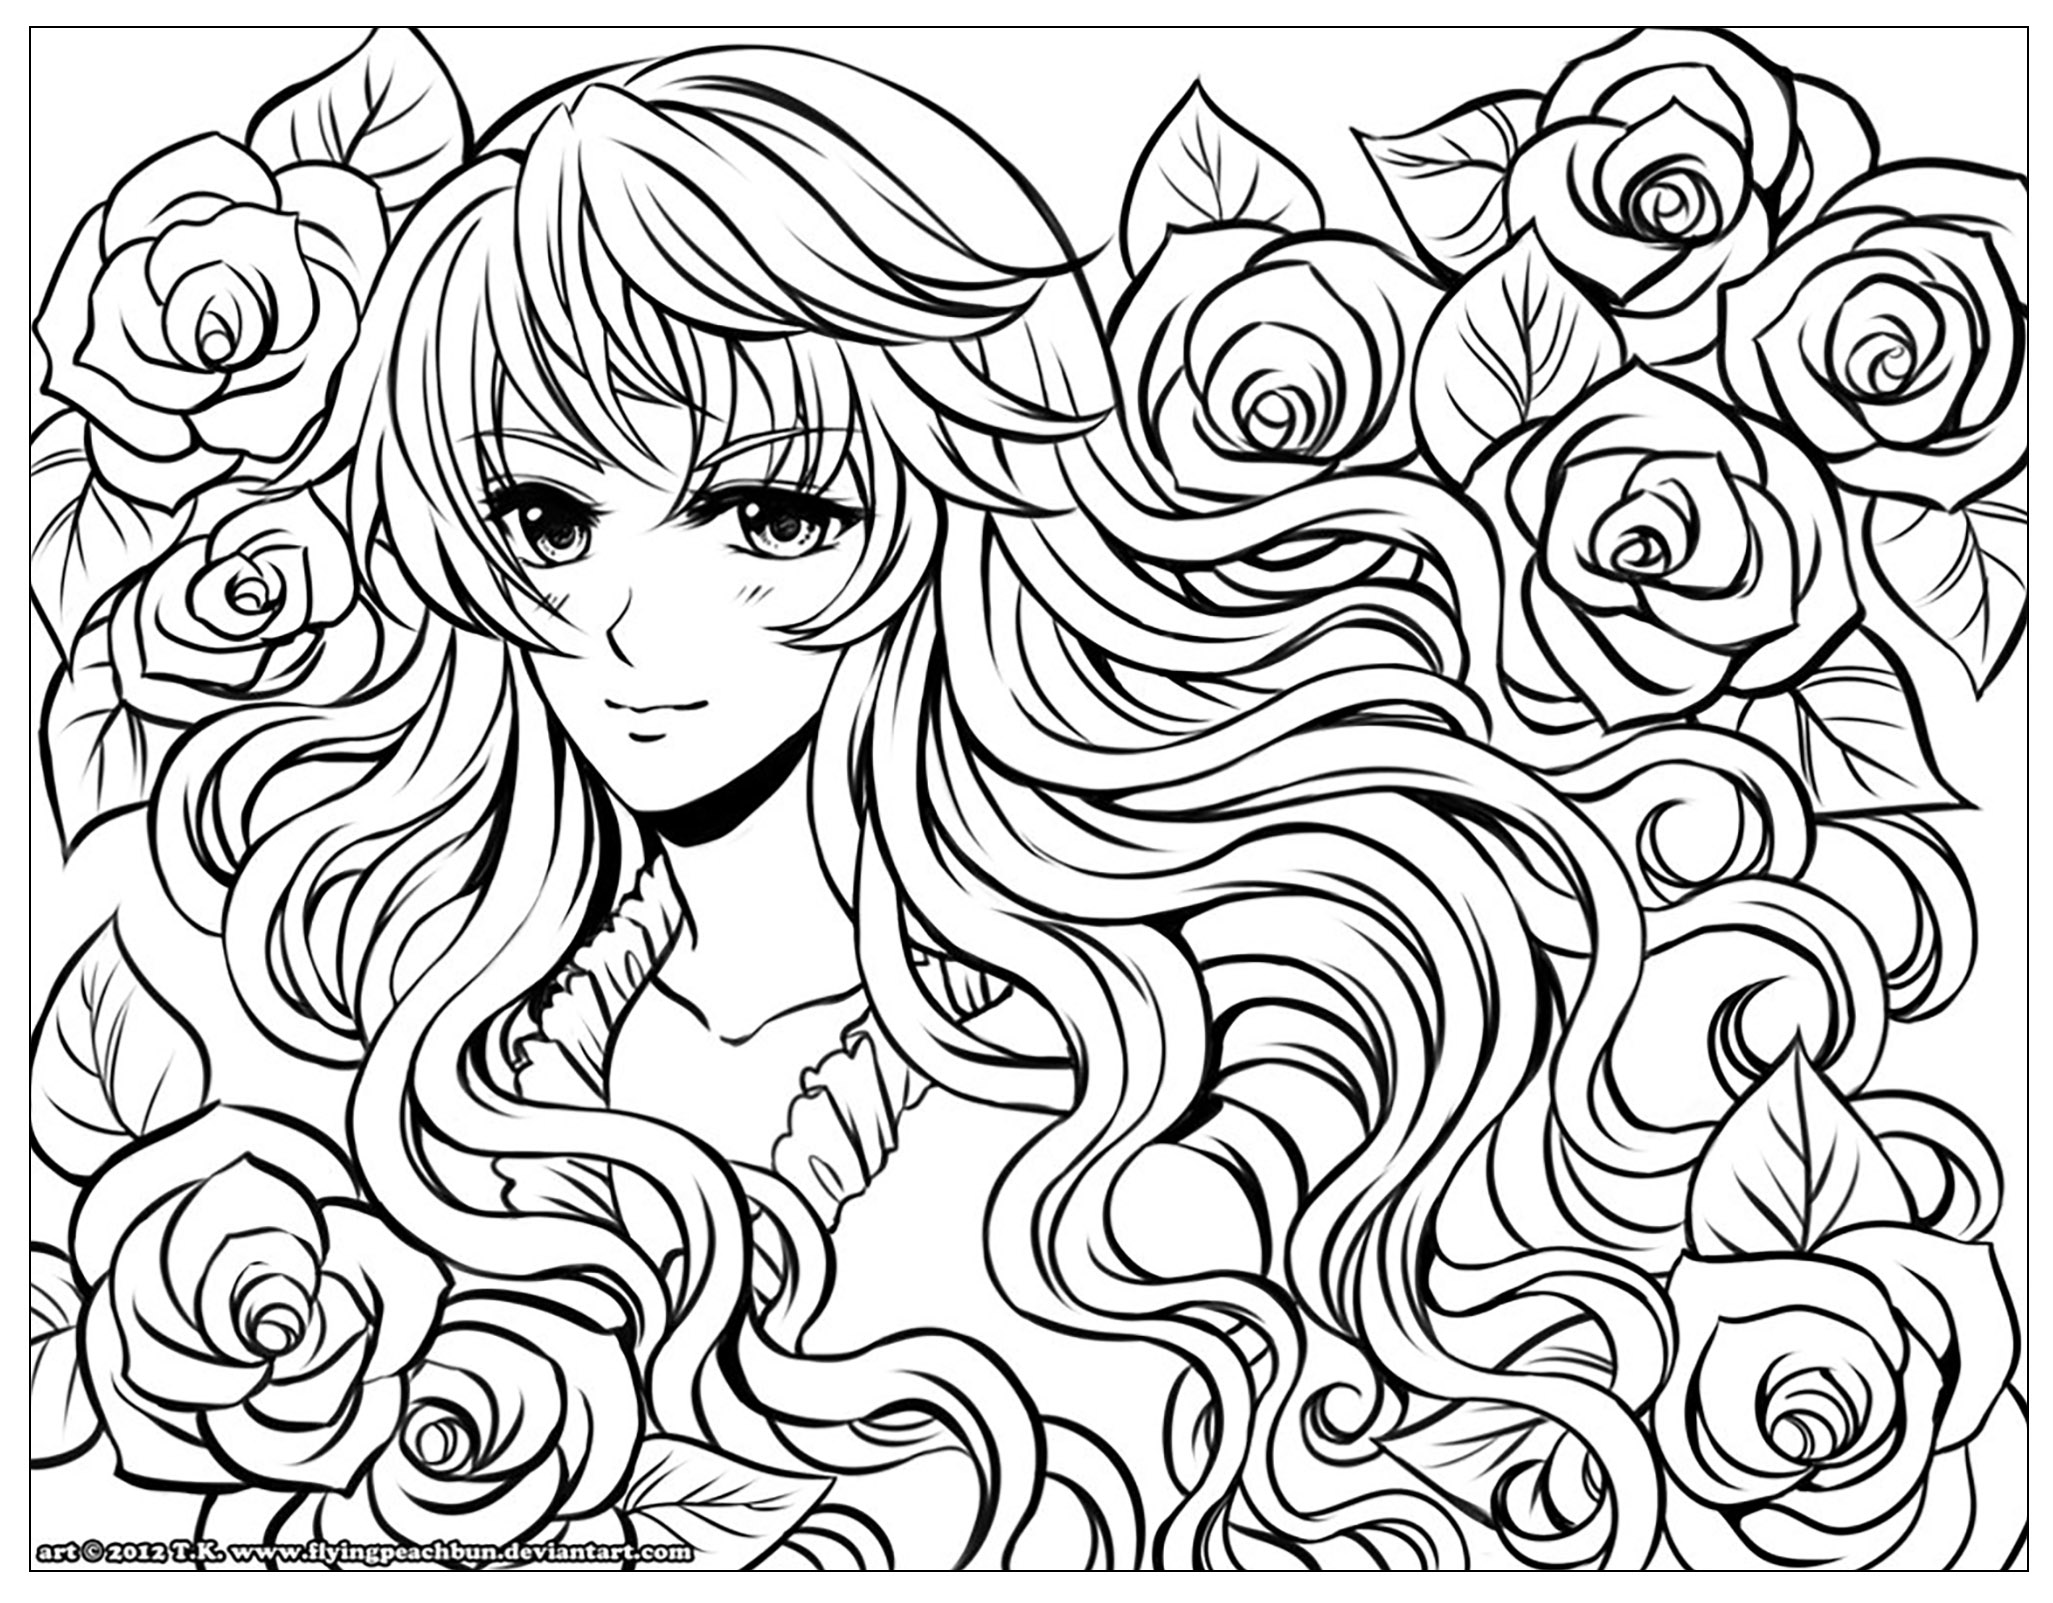 manga girl with flowers in her hair - Coloring Page Girl